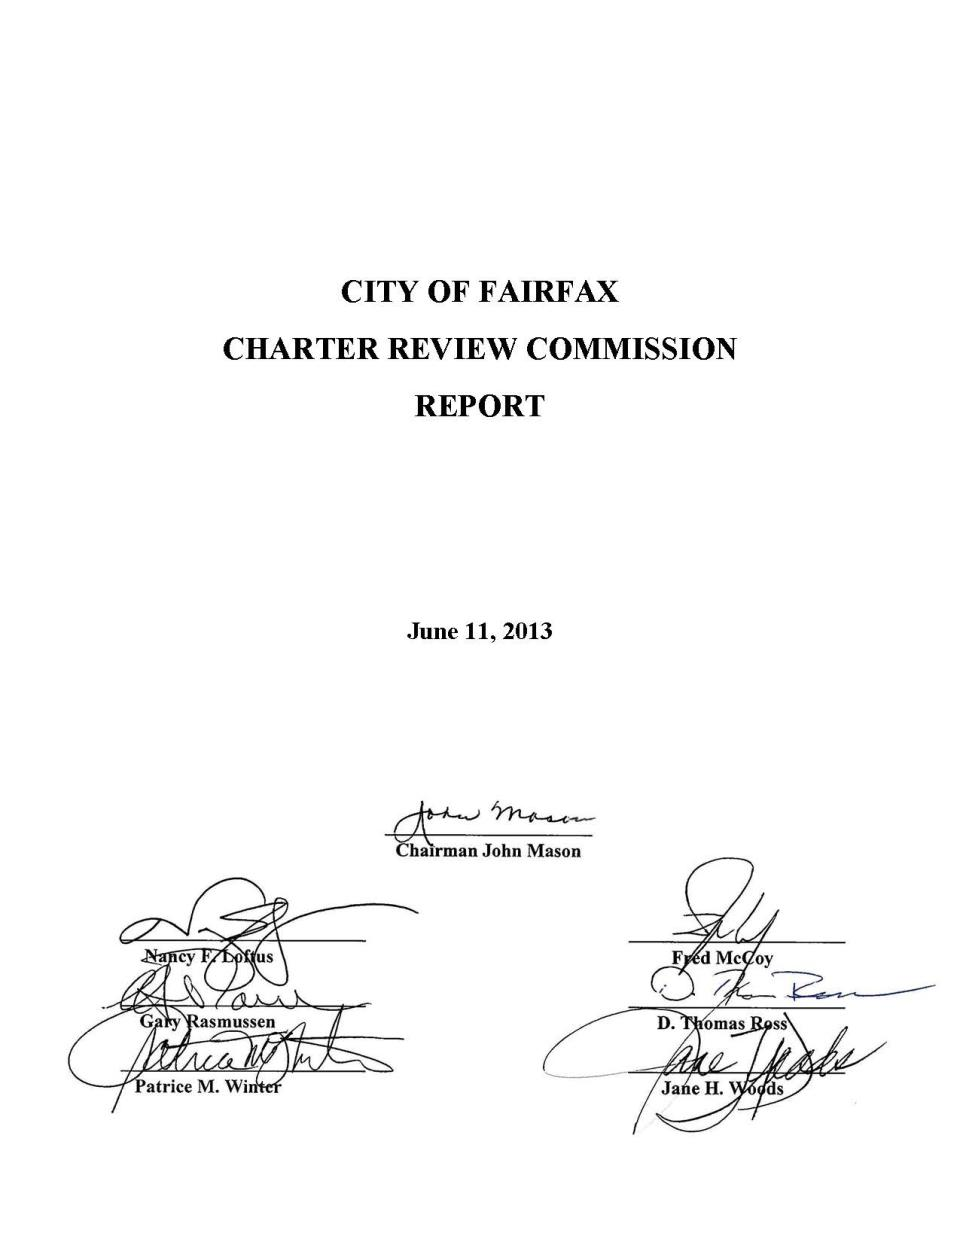 Charter Commission Signature Page